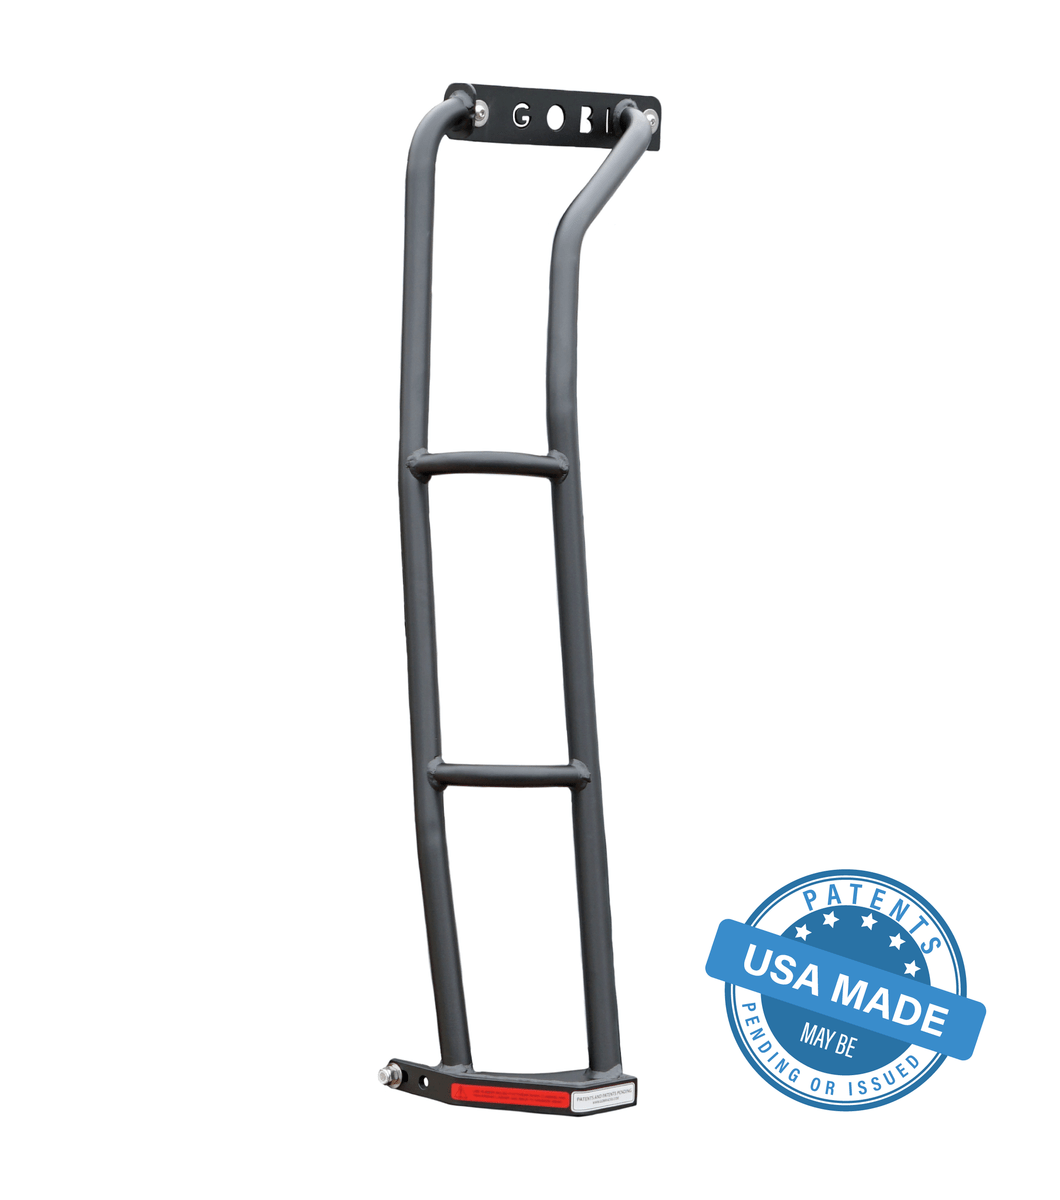 Gobi Jeep Wrangler Yj Rear Ladder